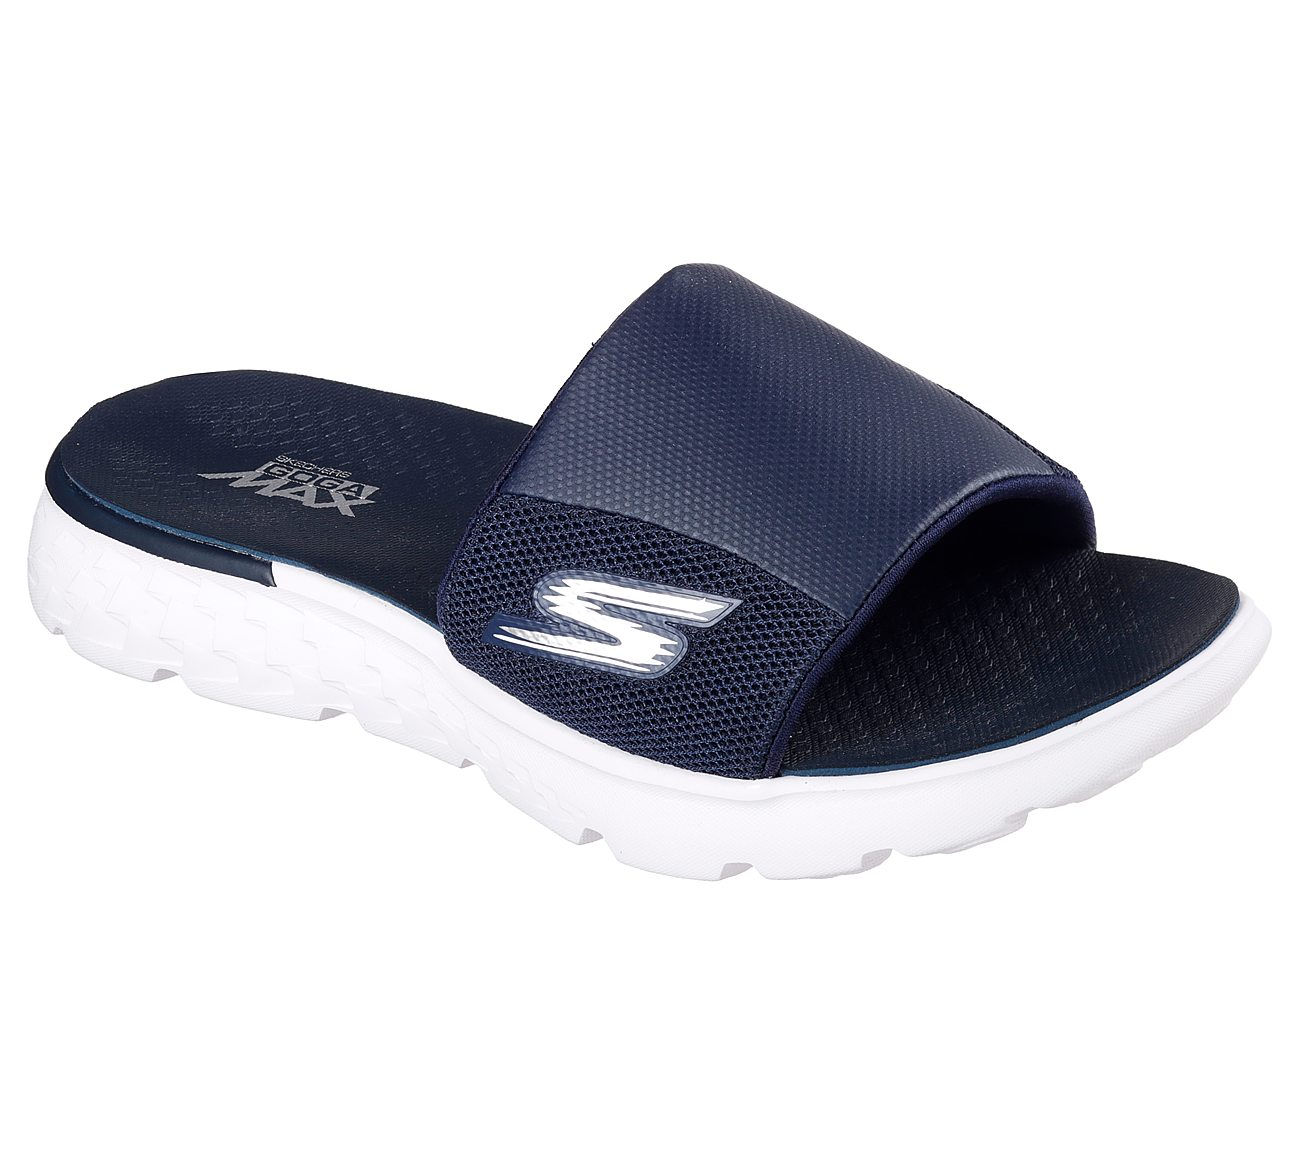 abf441c95c Skechers On the GO 400 - Cooler